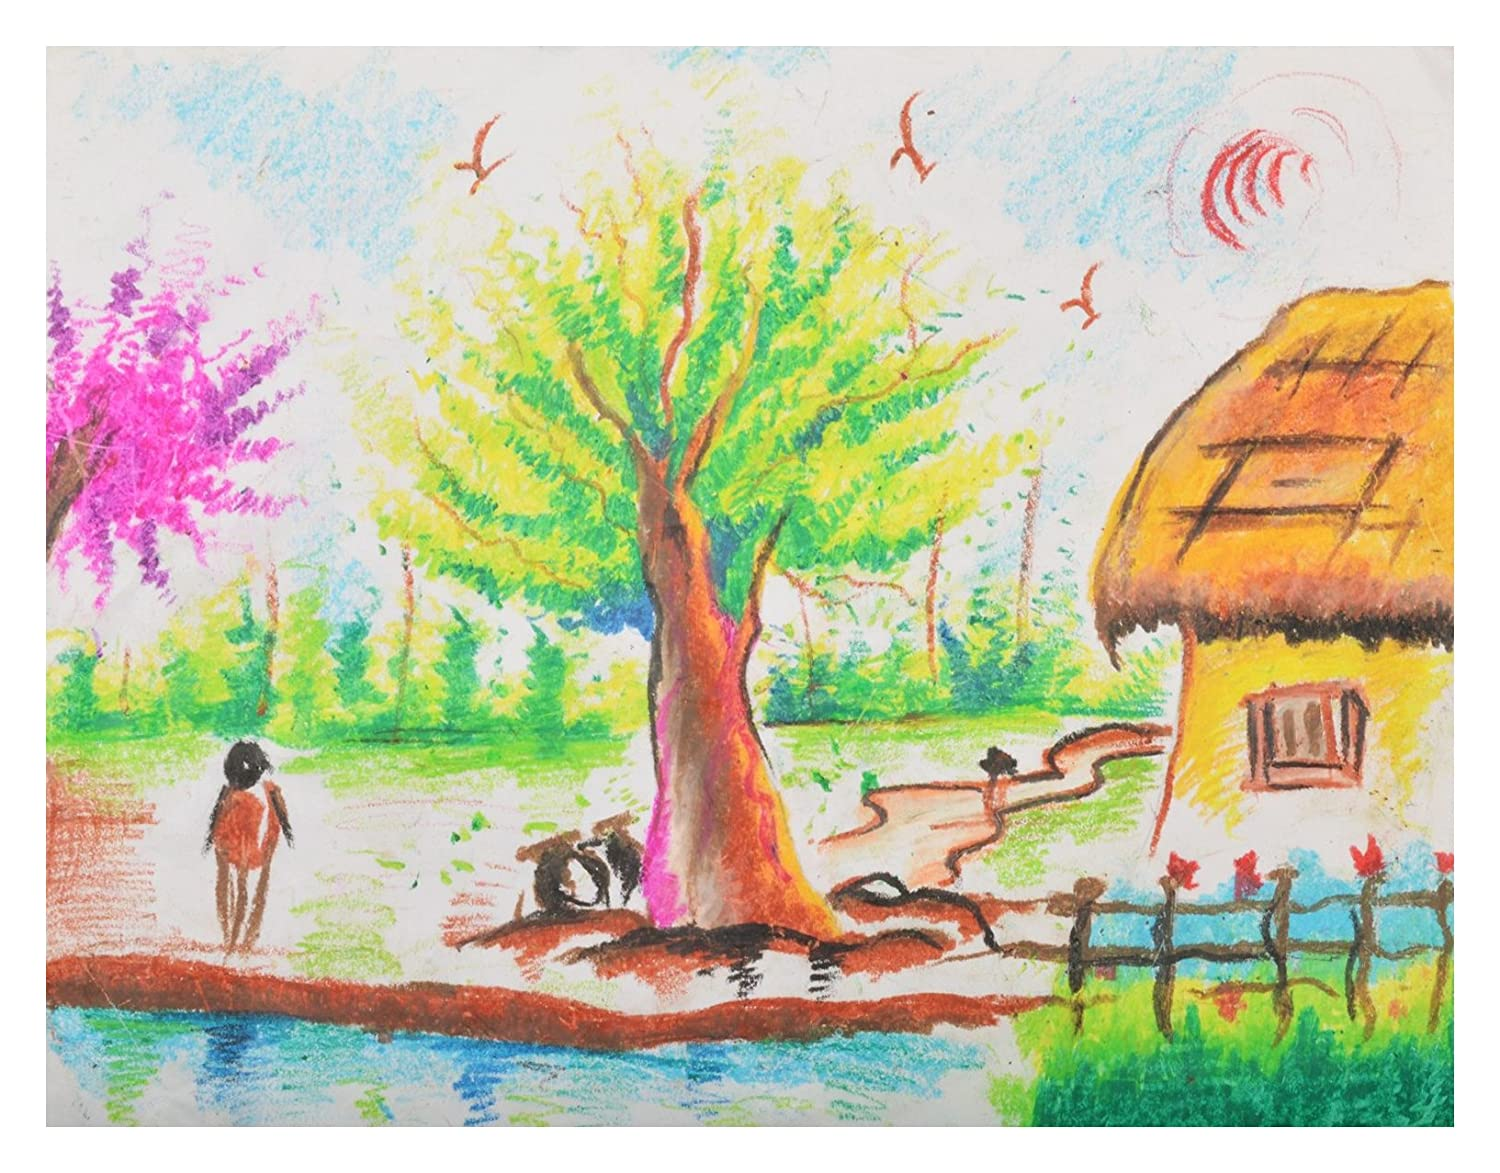 Rupa art a village life drawing cotton 33 cm x 43 cm x 2 cm amazon in home kitchen